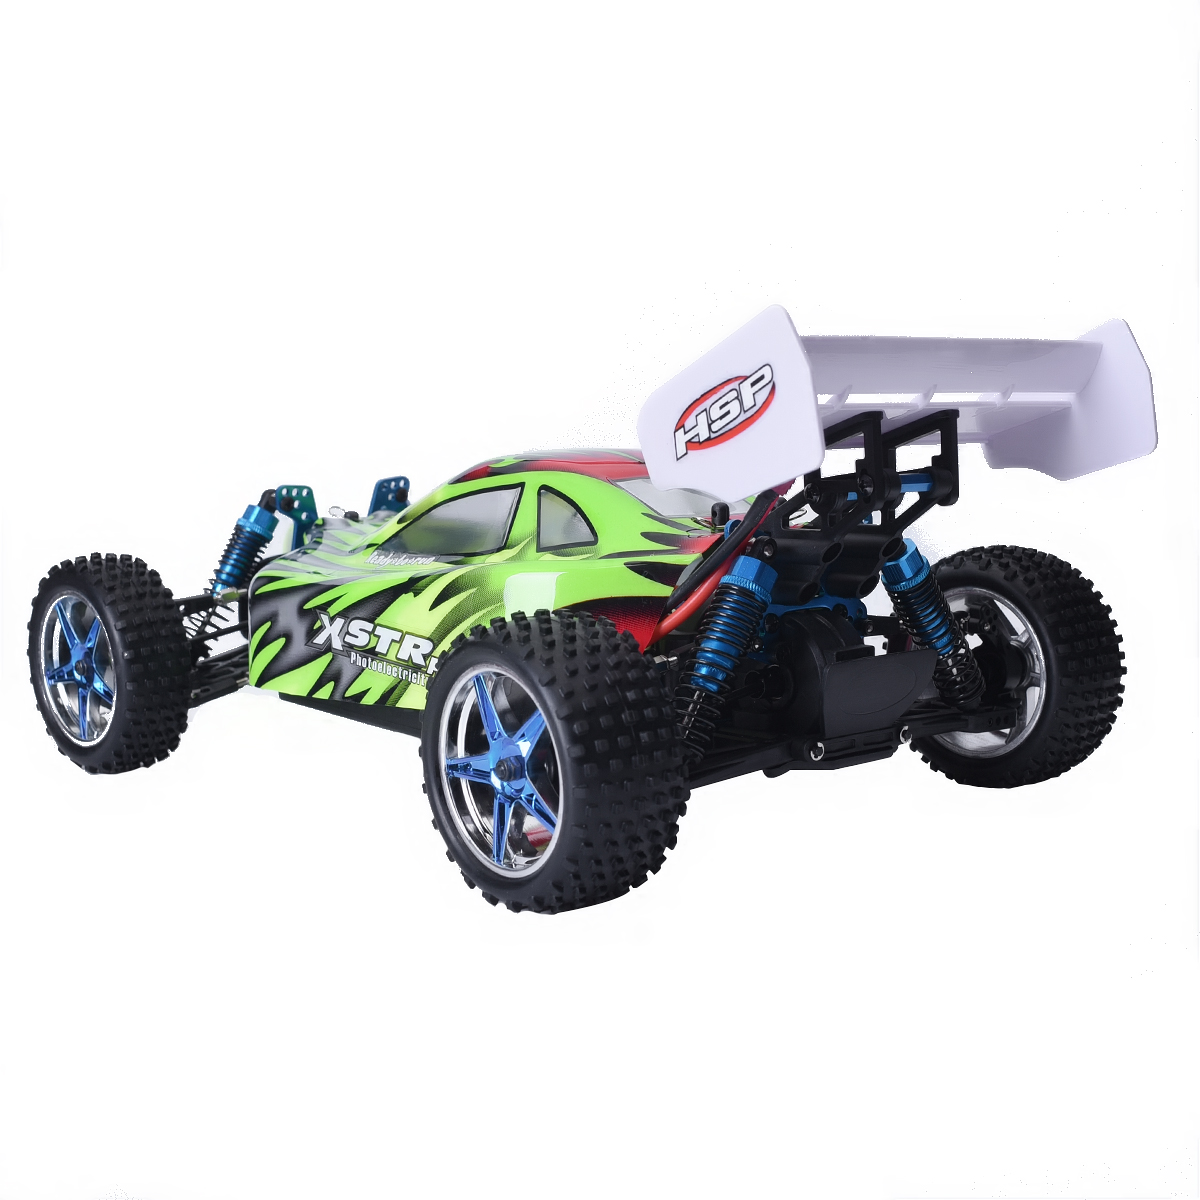 Hsp 1 10 Rc Car 4wd Buggy Electric Brushless Motor Off